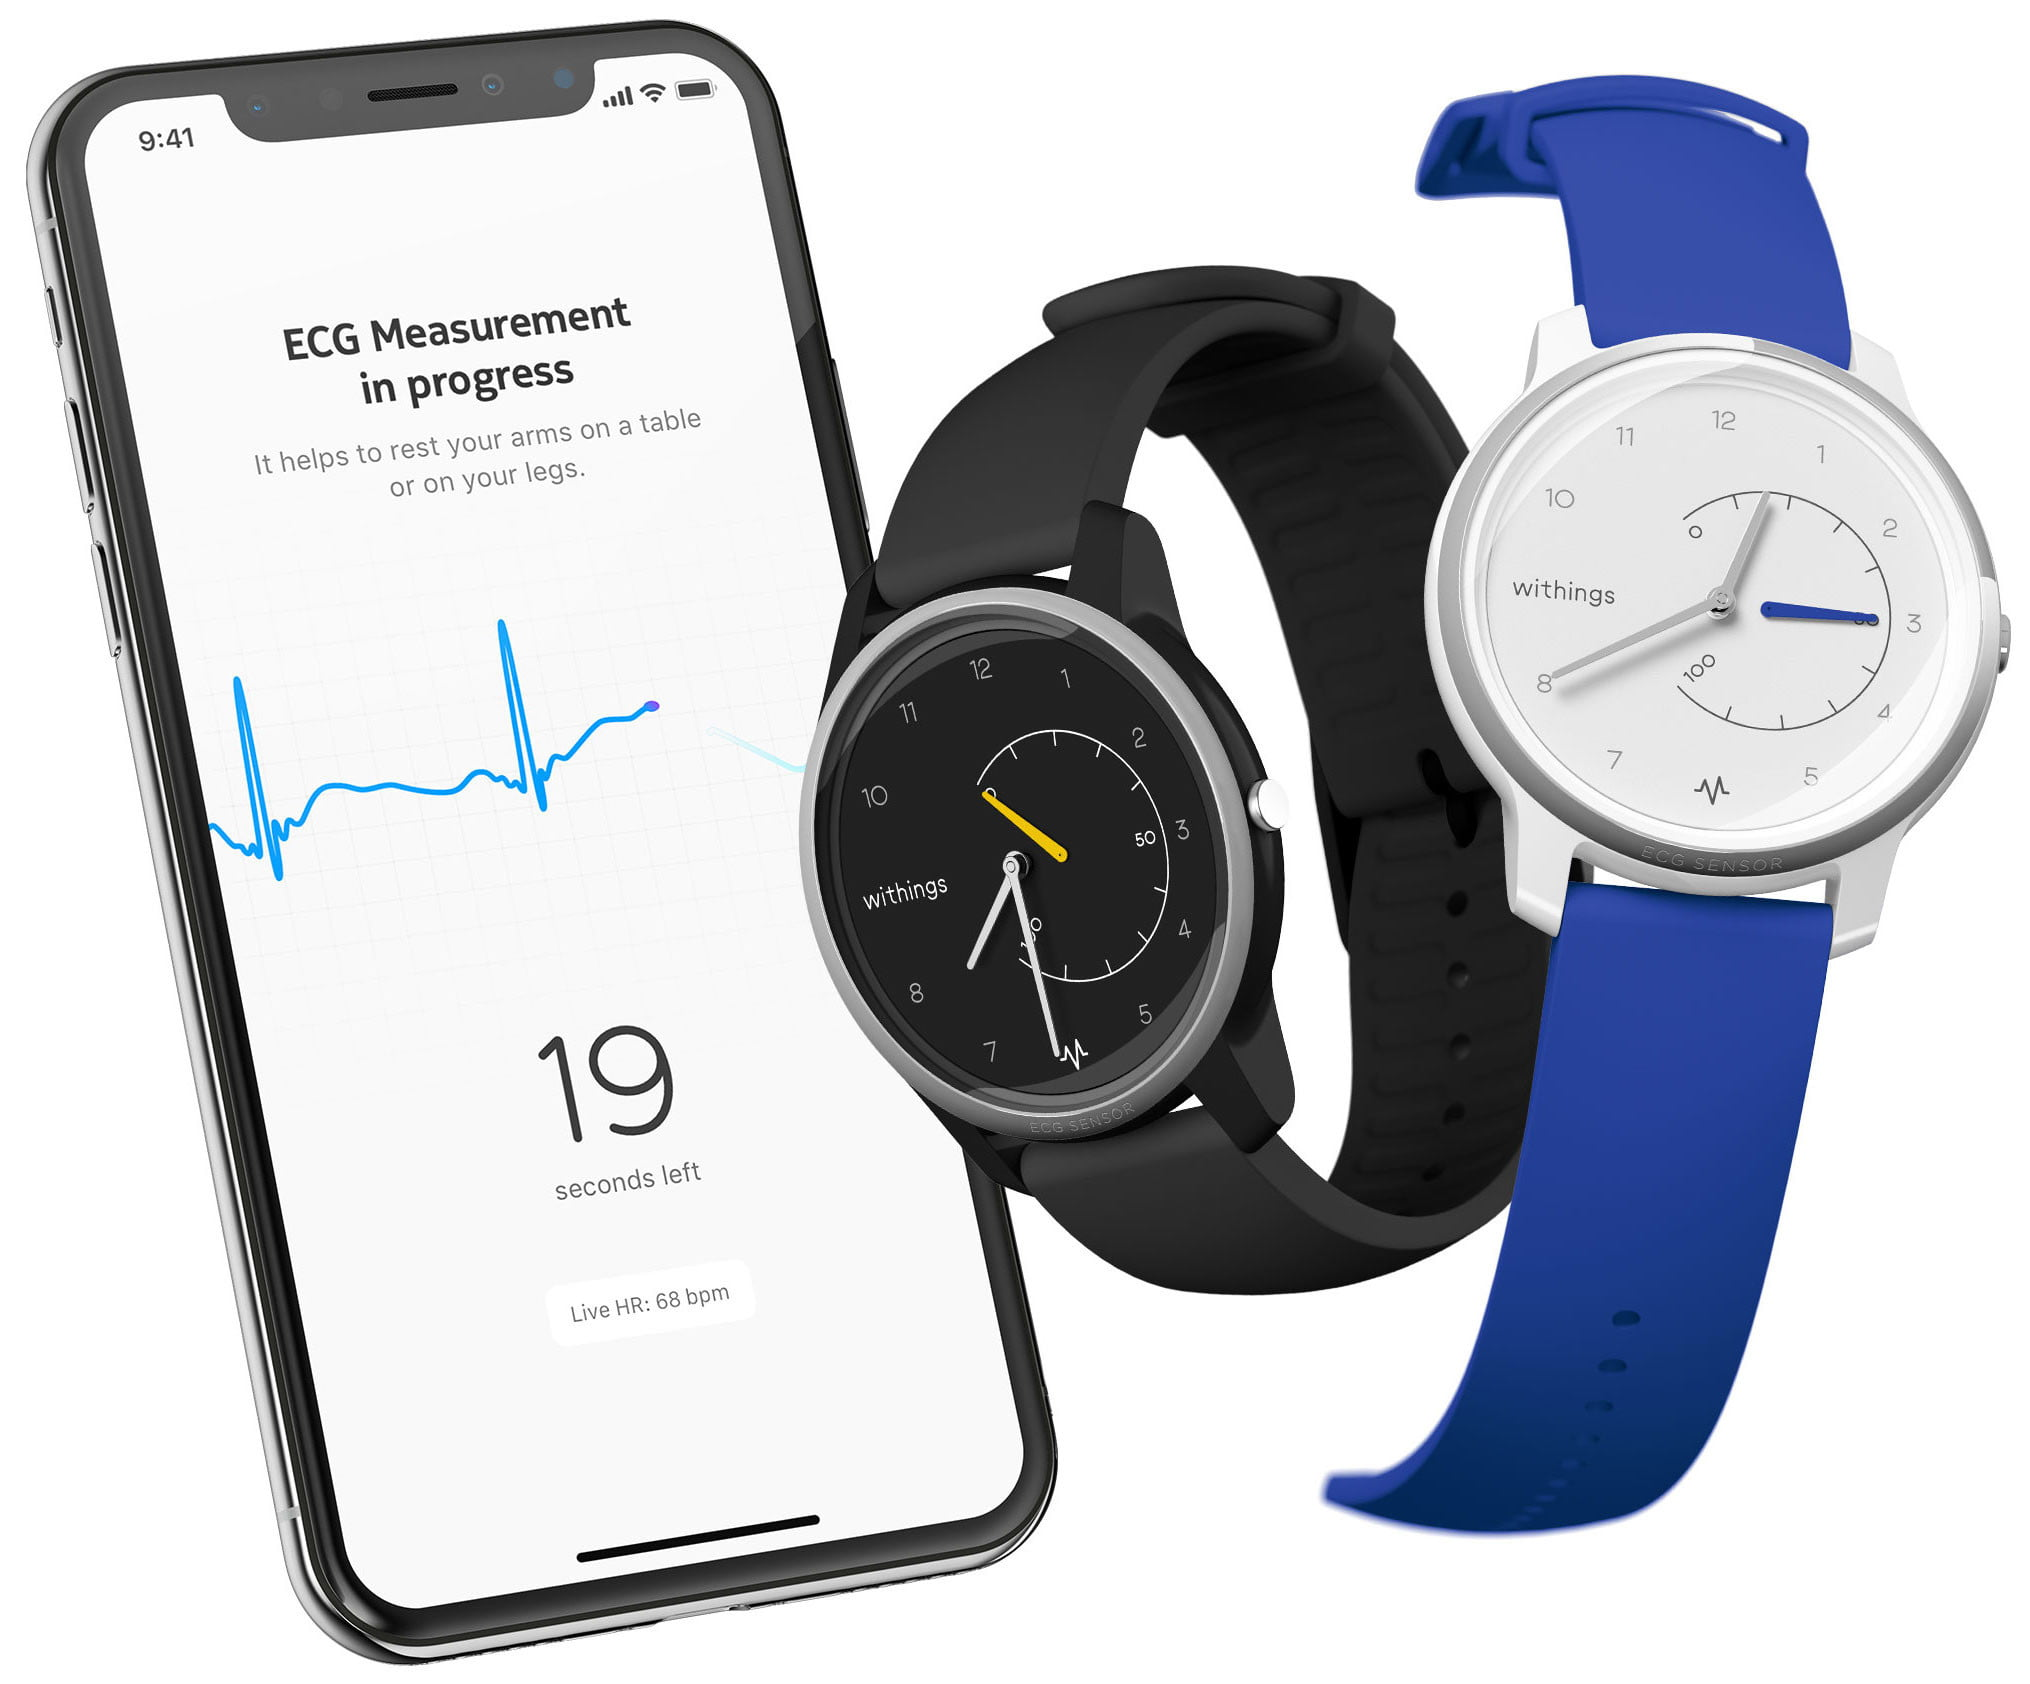 withinvgs ecg move bpm core ces 2019 conings